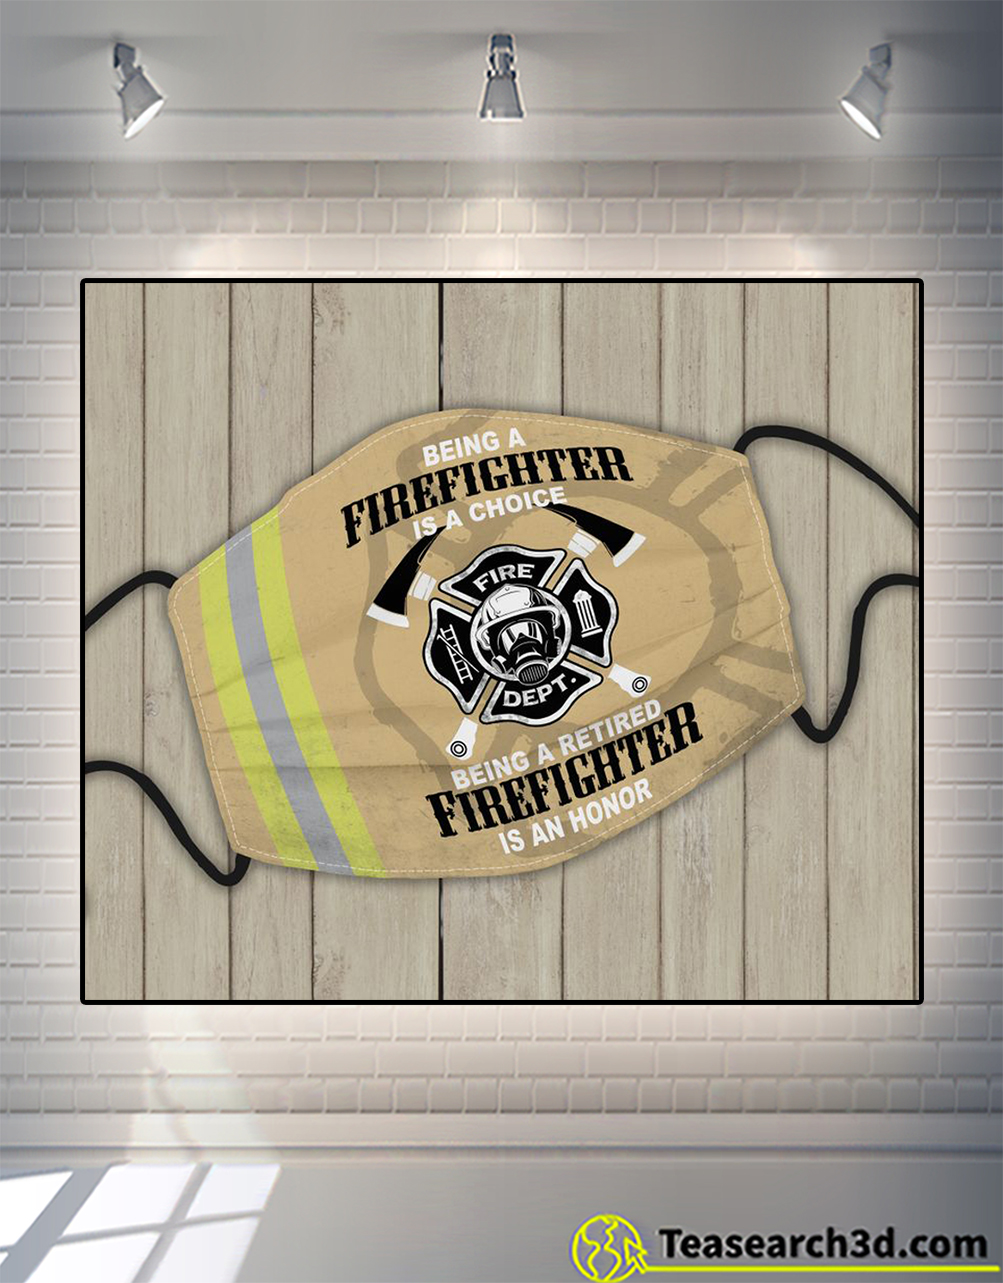 Being a firefighter is a choice face mask